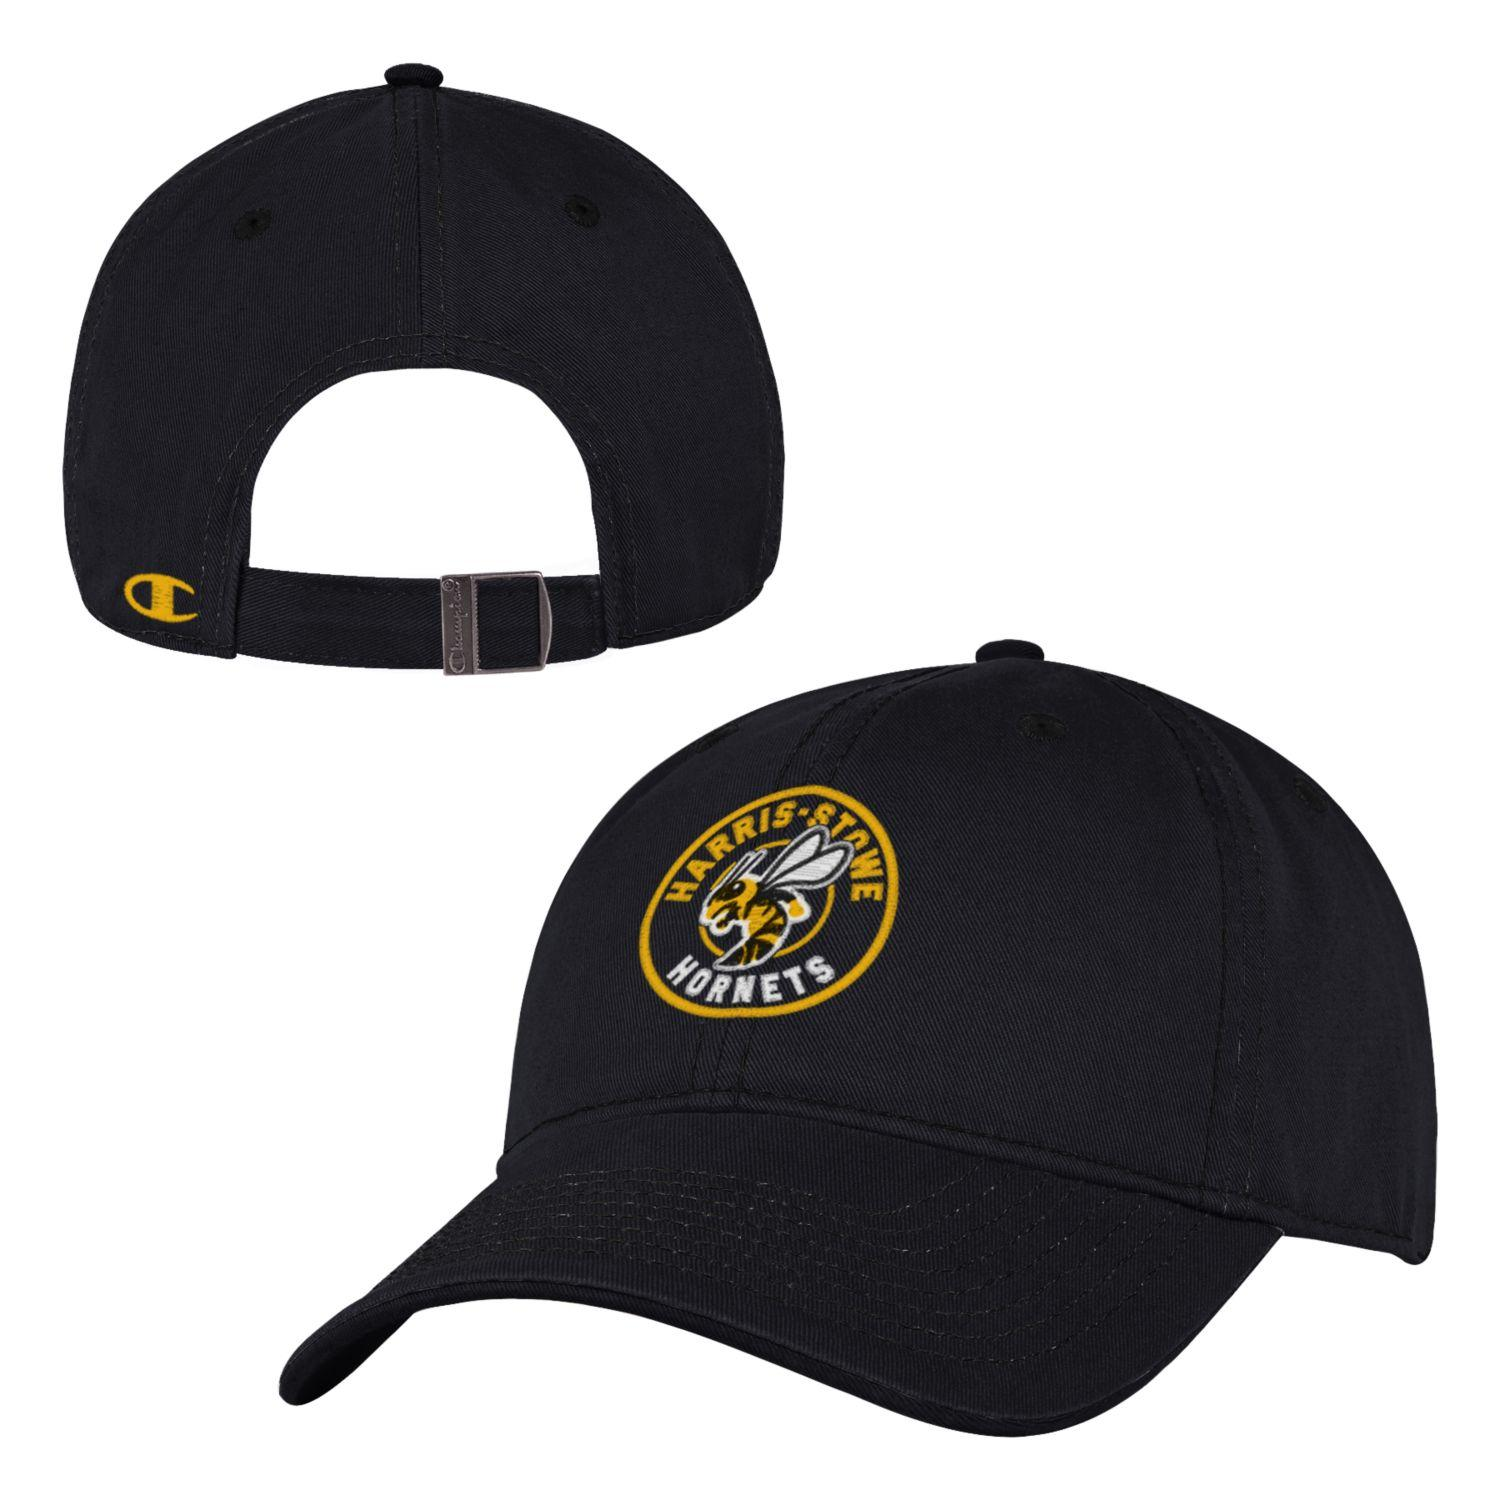 Harris Stowe Hornets Embroidered Baseball Hat